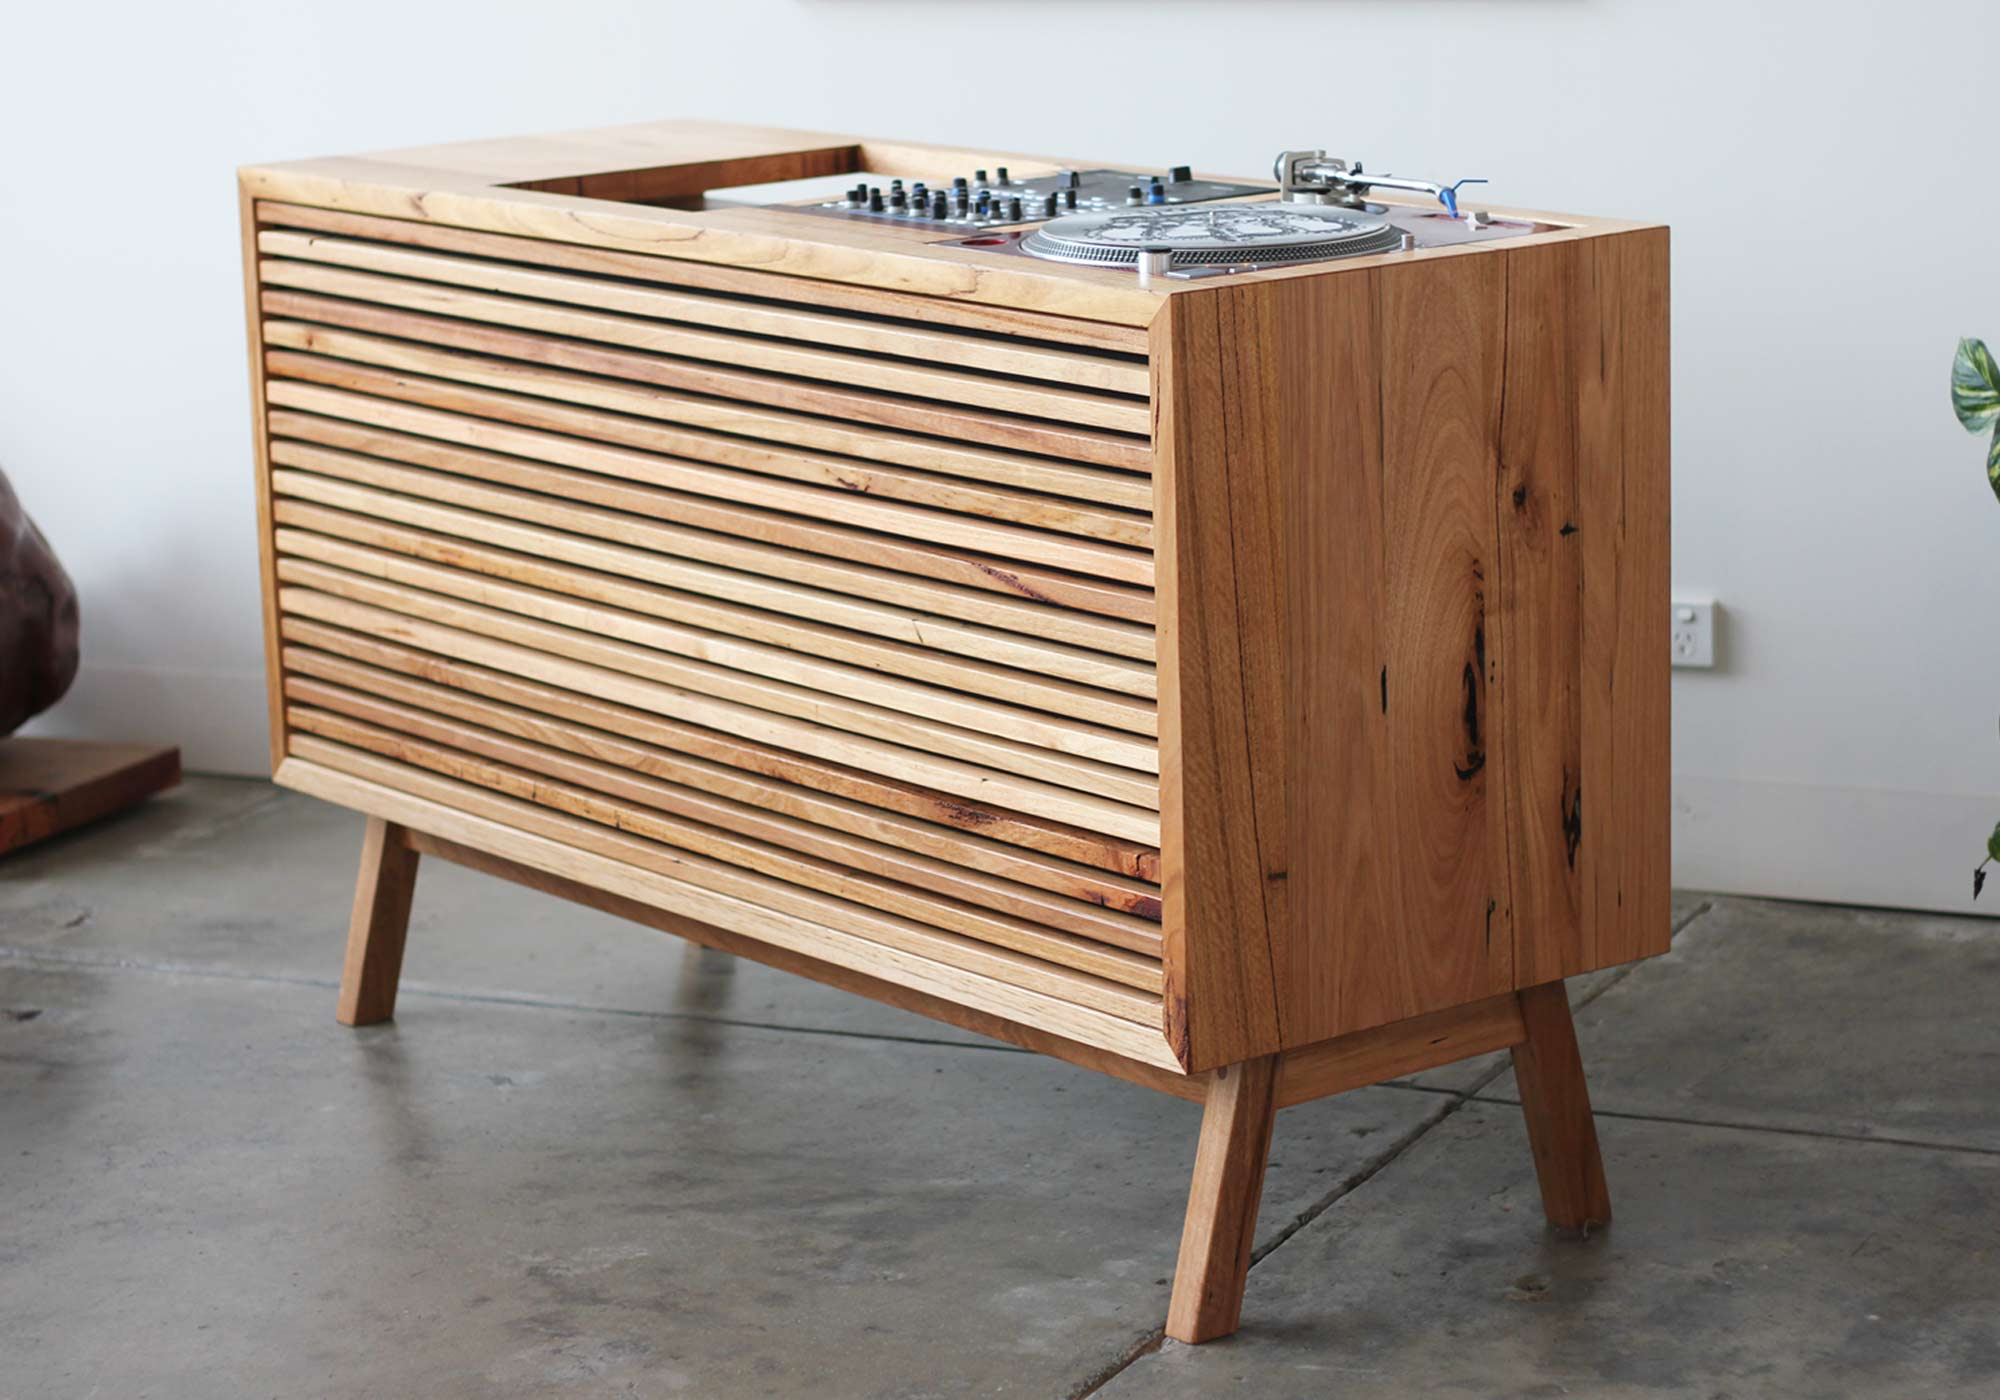 dj console Recycled Timber Furniture Melbourne Yard